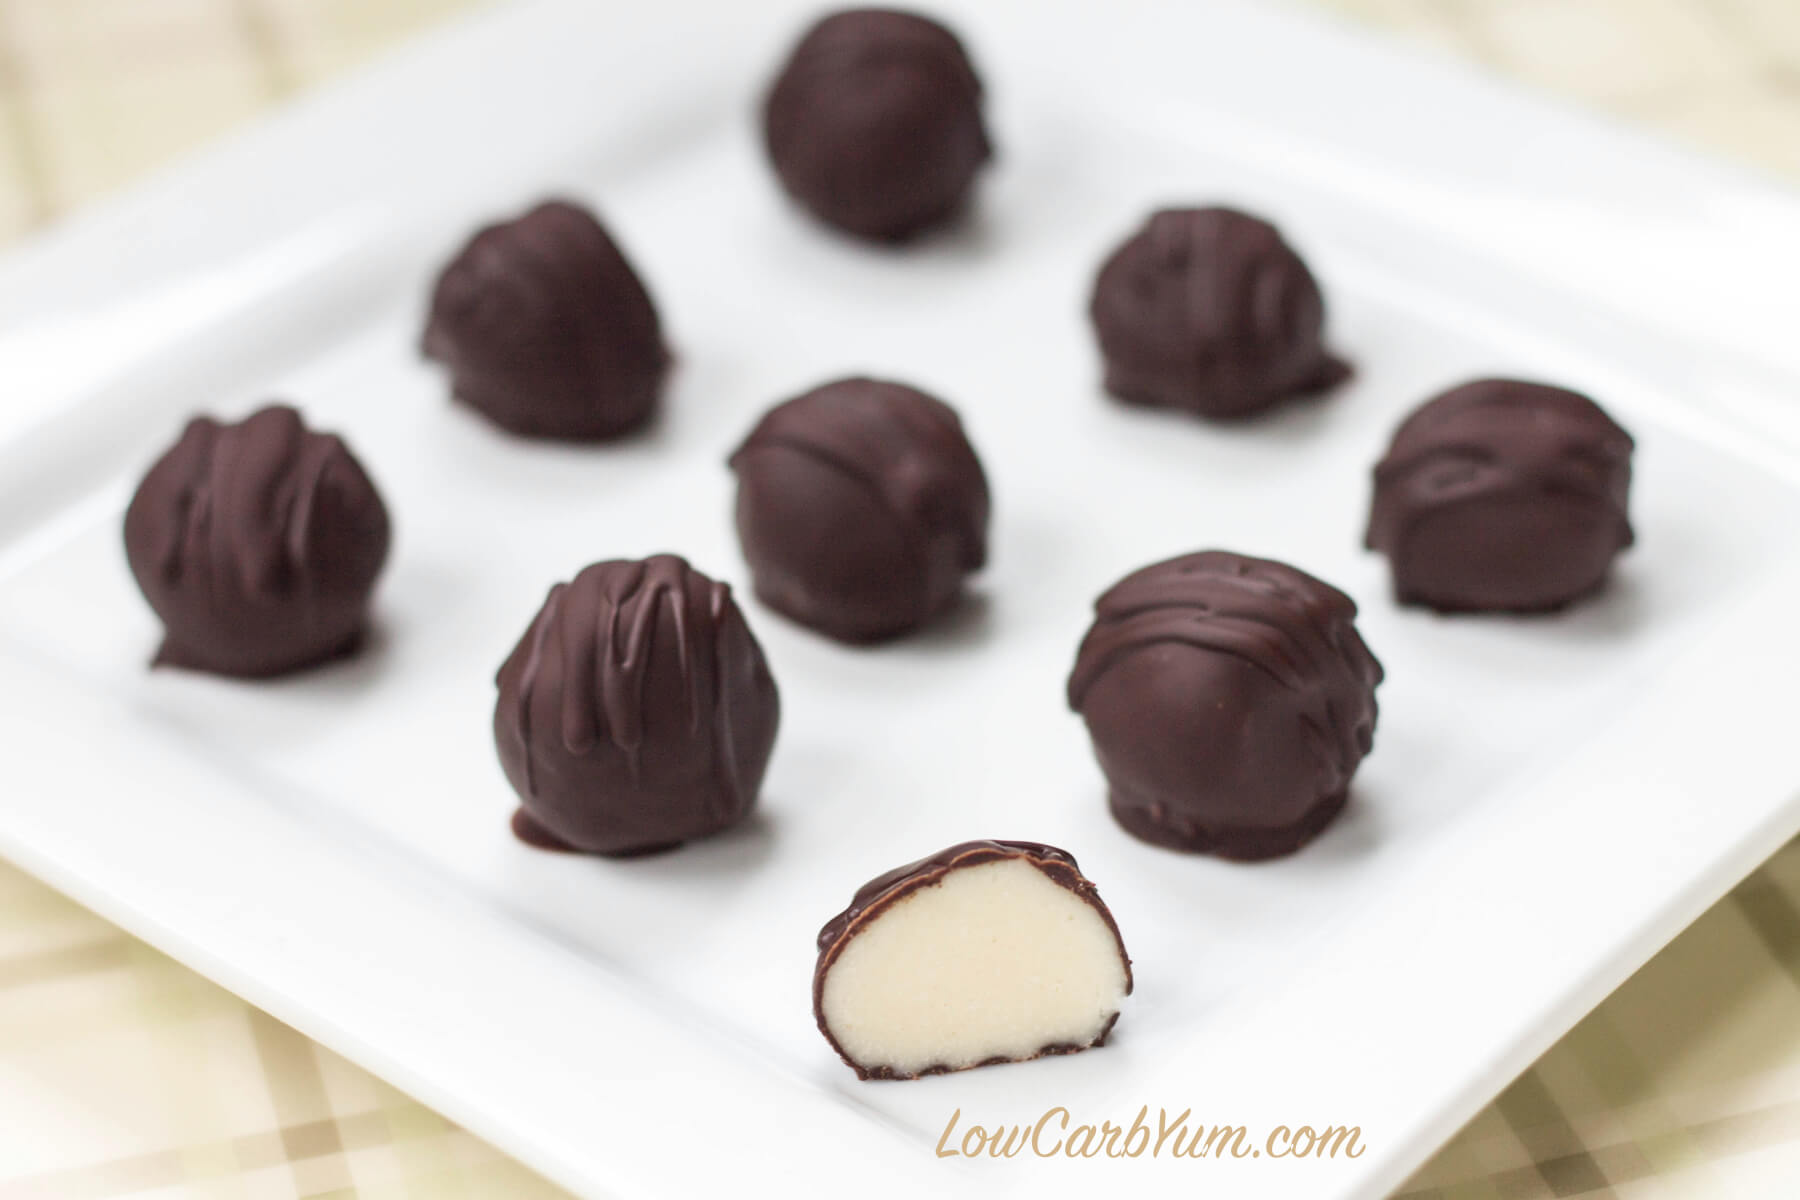 Low carb white chocolate truffles